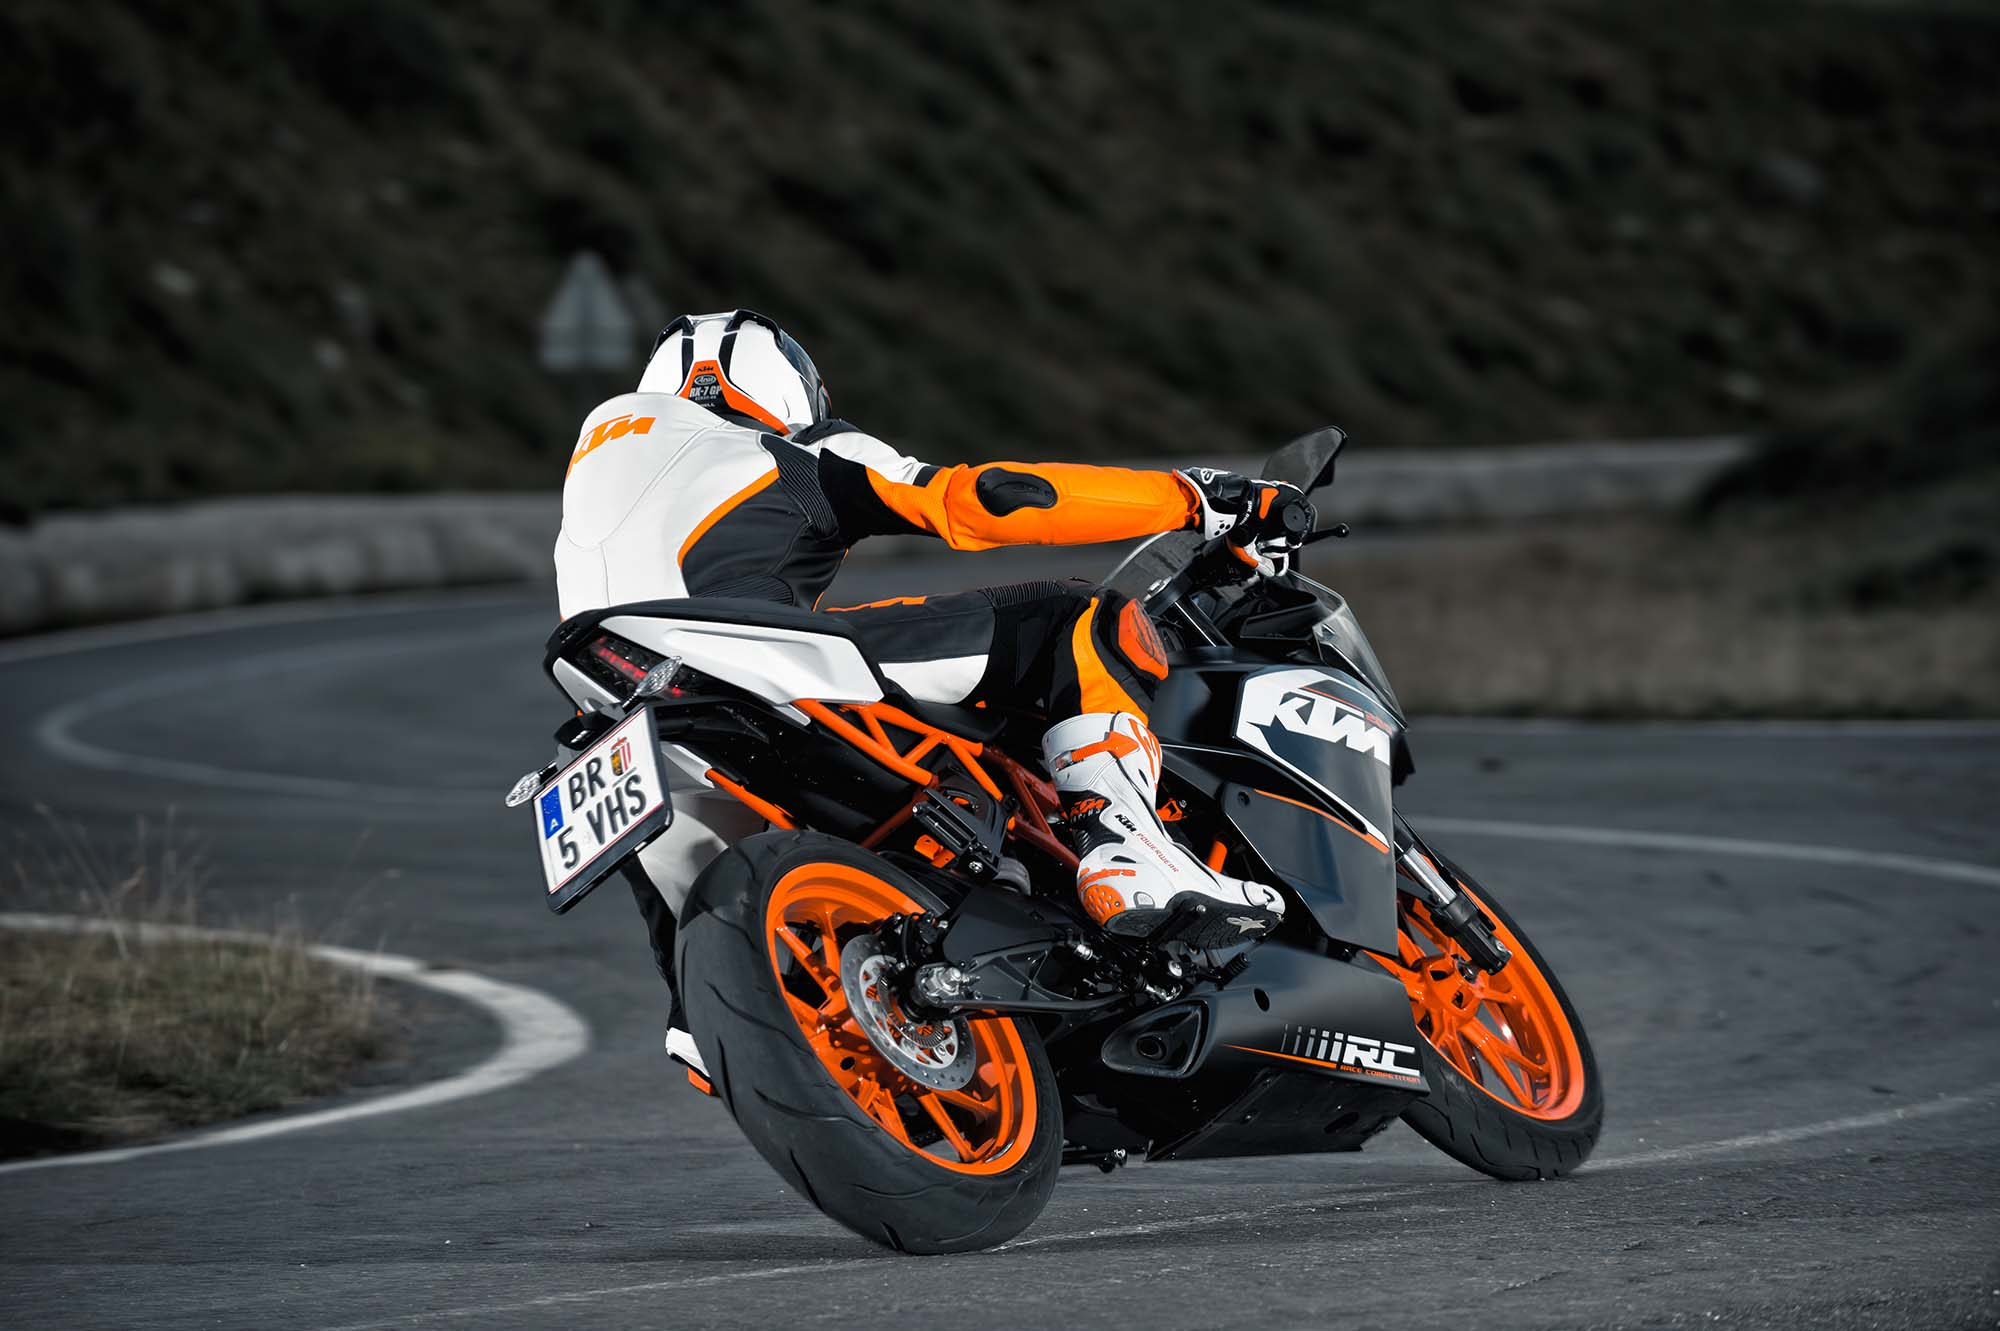 2014 Ktm Rc200 Ktm Rc125 The More The Merrier Asphalt Rubber